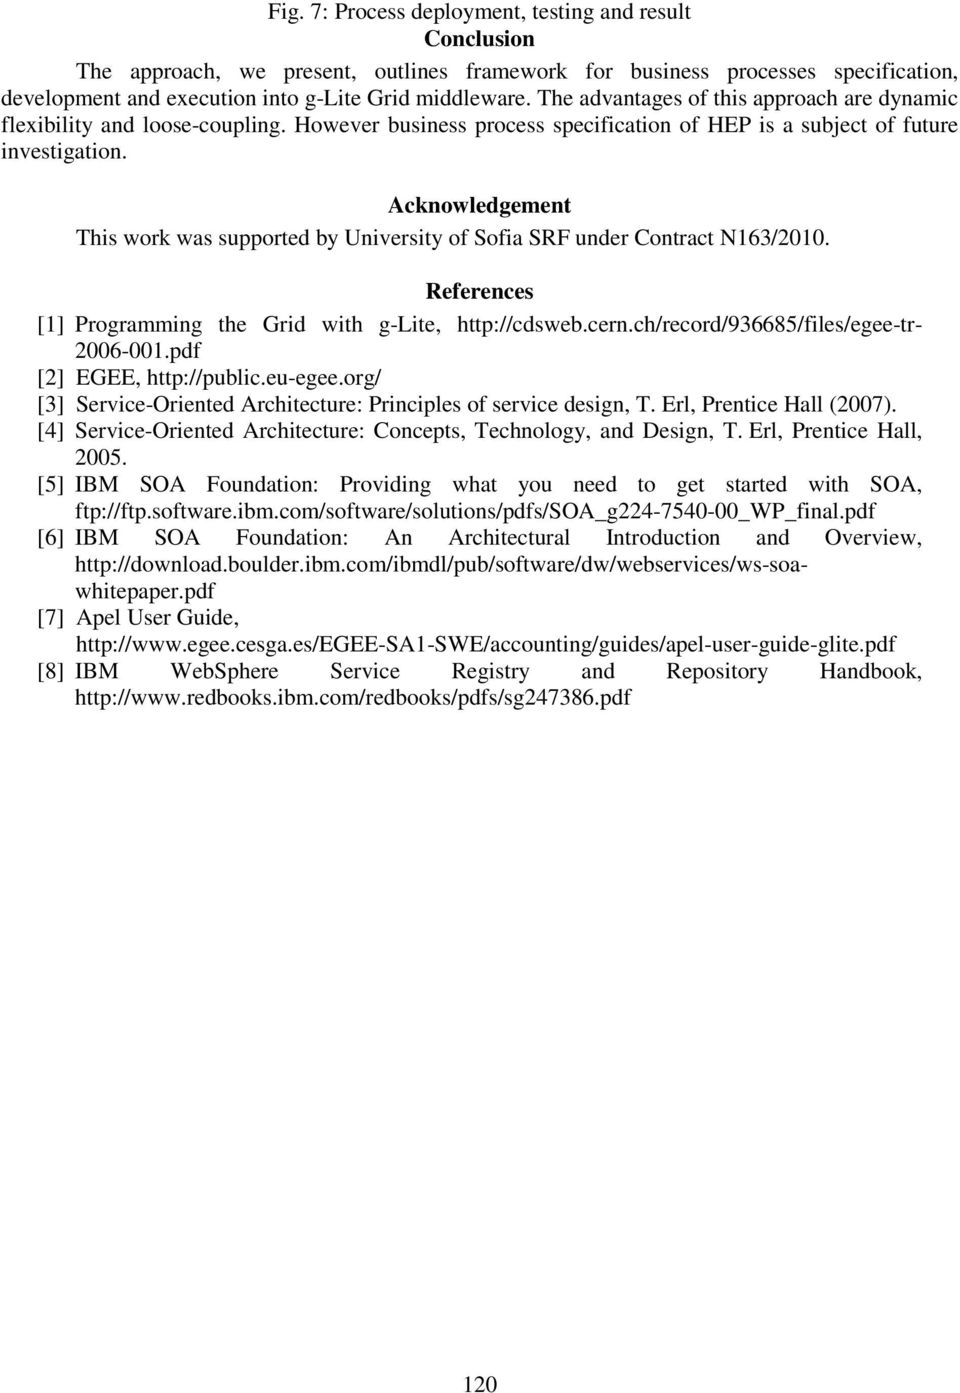 Acknowledgement This work was supported by University of Sofia SRF under Contract N163/2010. References [1] Programming the Grid with g-lite, http://cdsweb.cern.